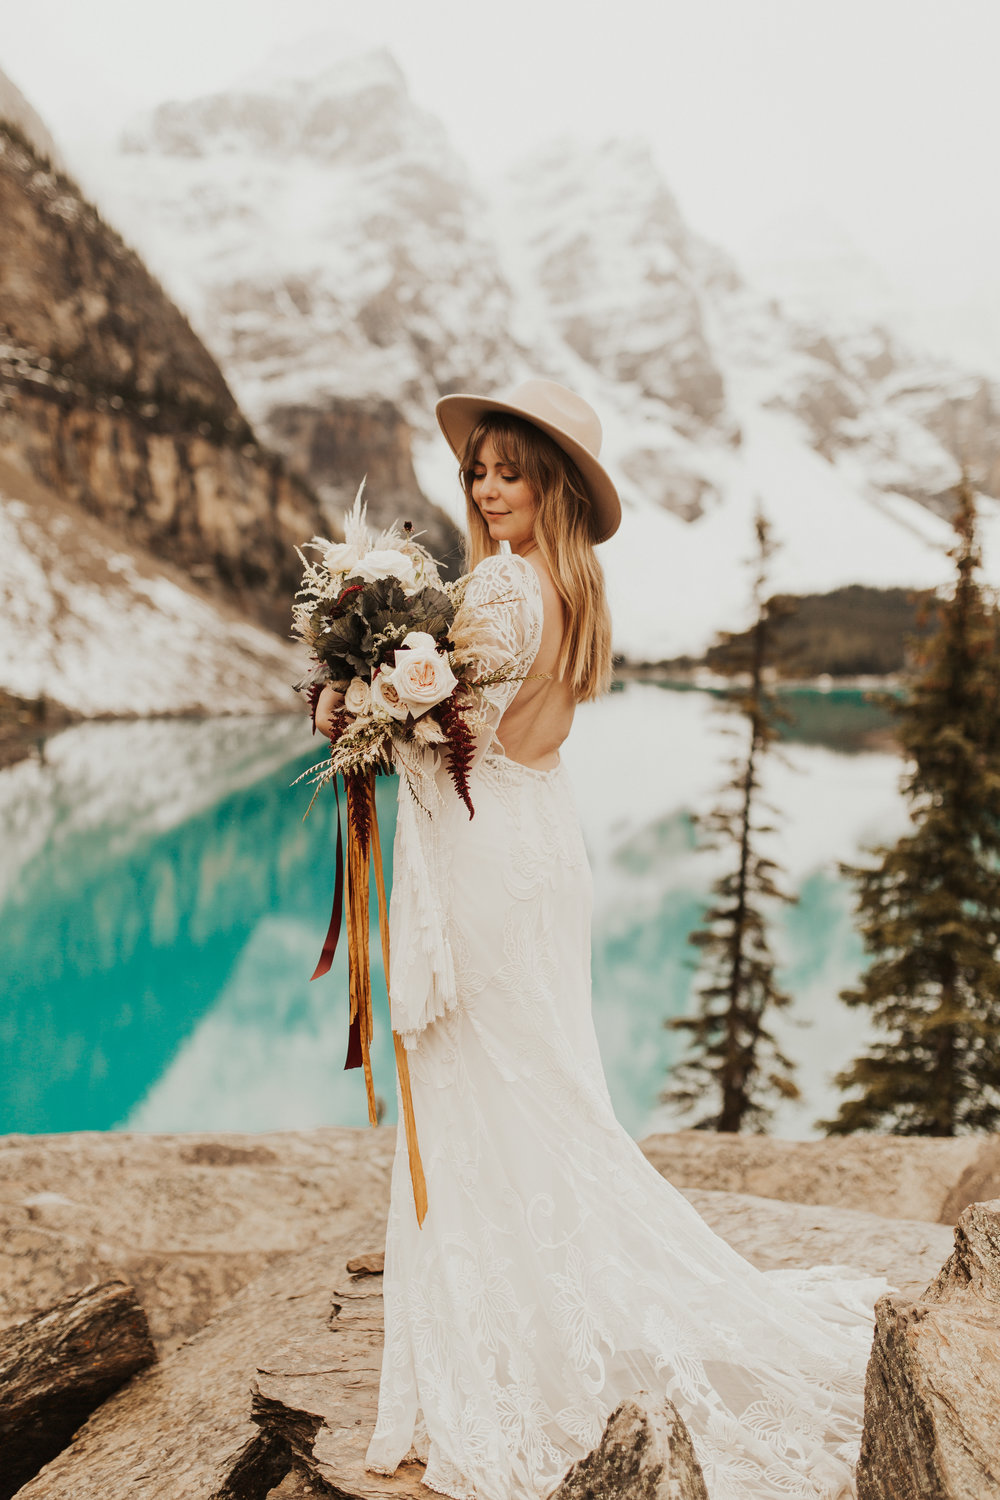 Banff Elopement l Lake Moraine Elopement l Vintage Bolo Tie l Pampas Grass Boho Boquet l Rue Design Wedding Dress l Banff Wedding Photographer l Destination Wedding Photographer l Katy Rose Photo_-28.jpg